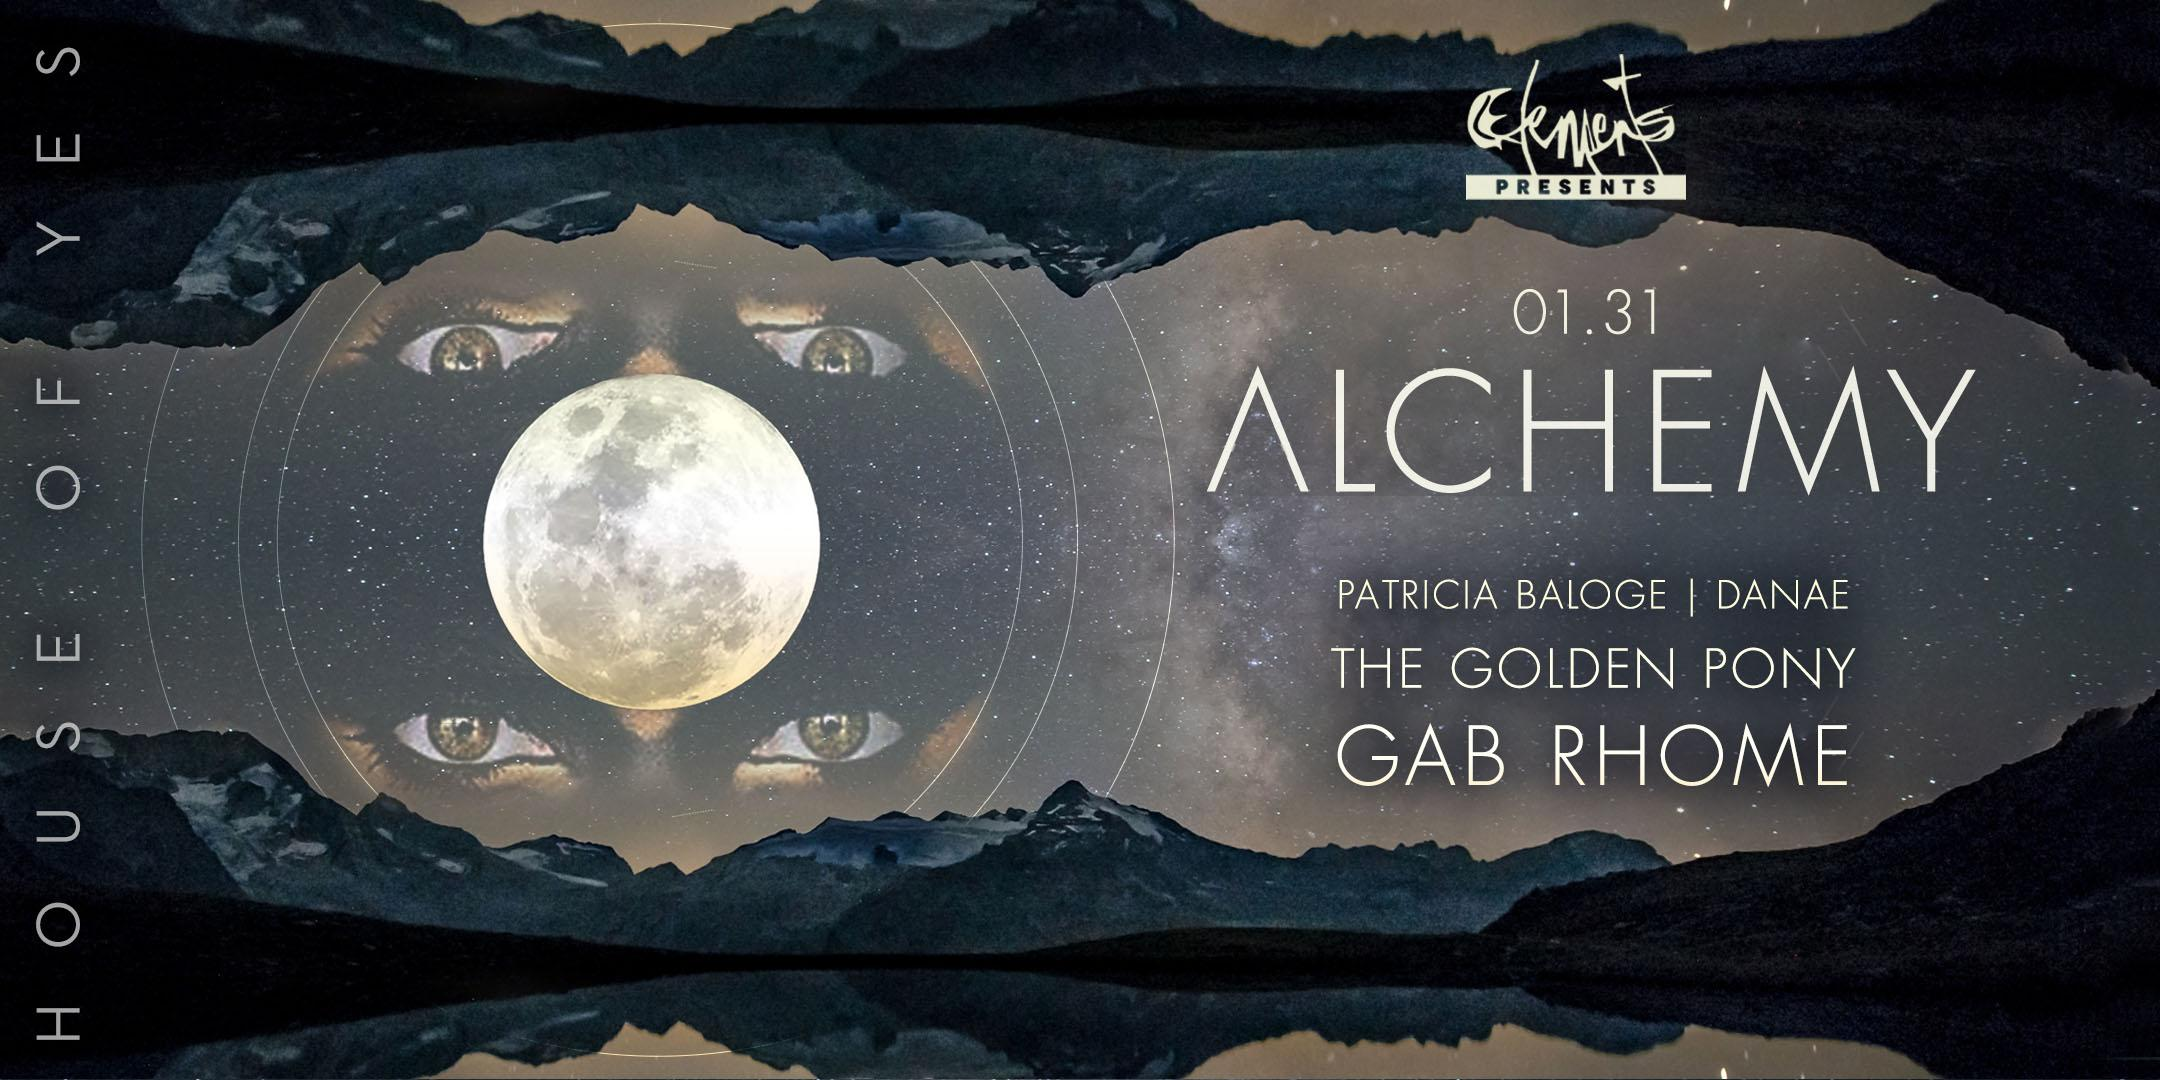 Road To Elements: Alchemy with Gab Rhome & The Golden Pony